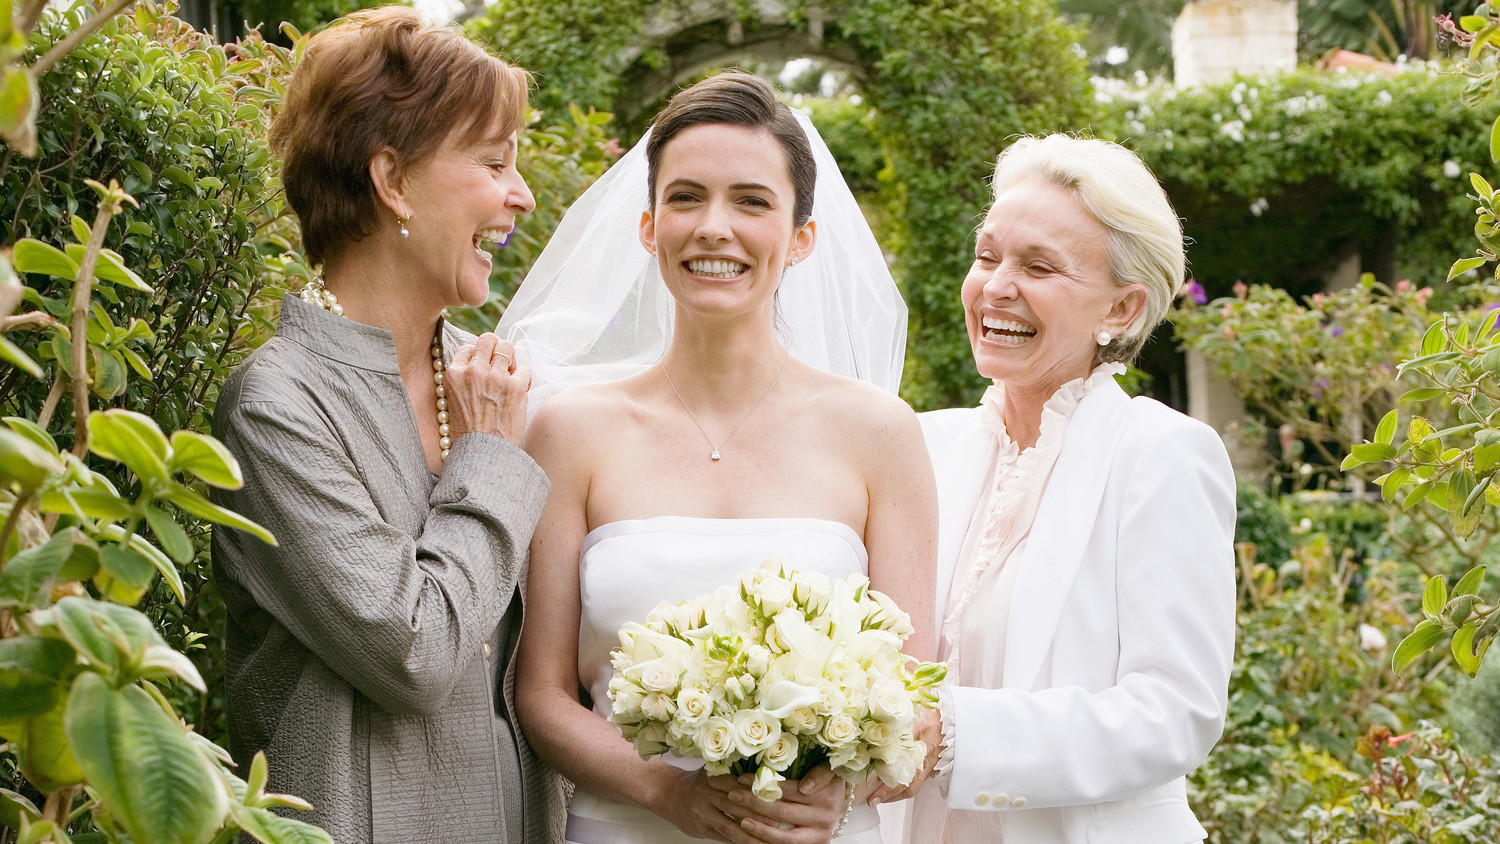 4 Mother Of The Bride Vs. Stepmom Clashes That Could Crash